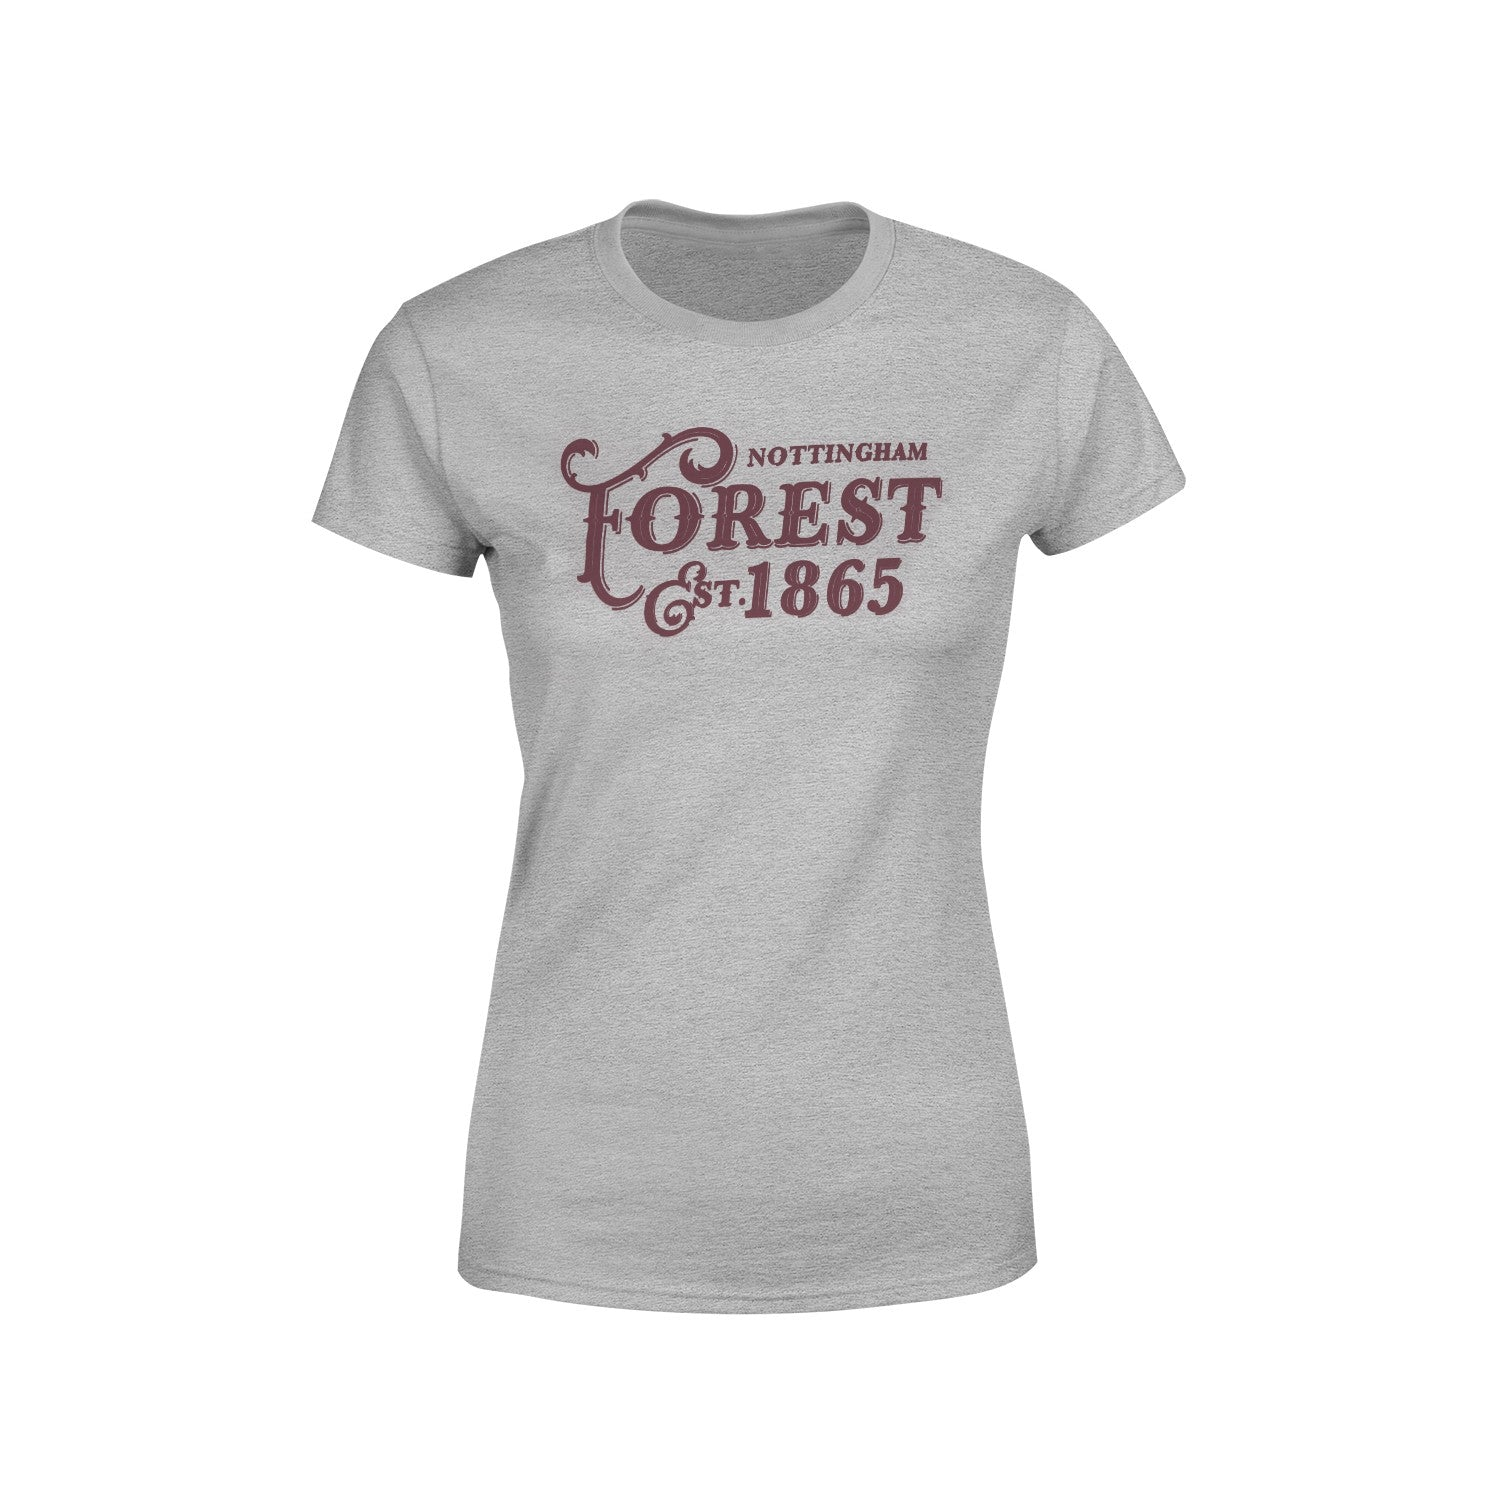 NFFC Womens Grey Est 1865 T-Shirt